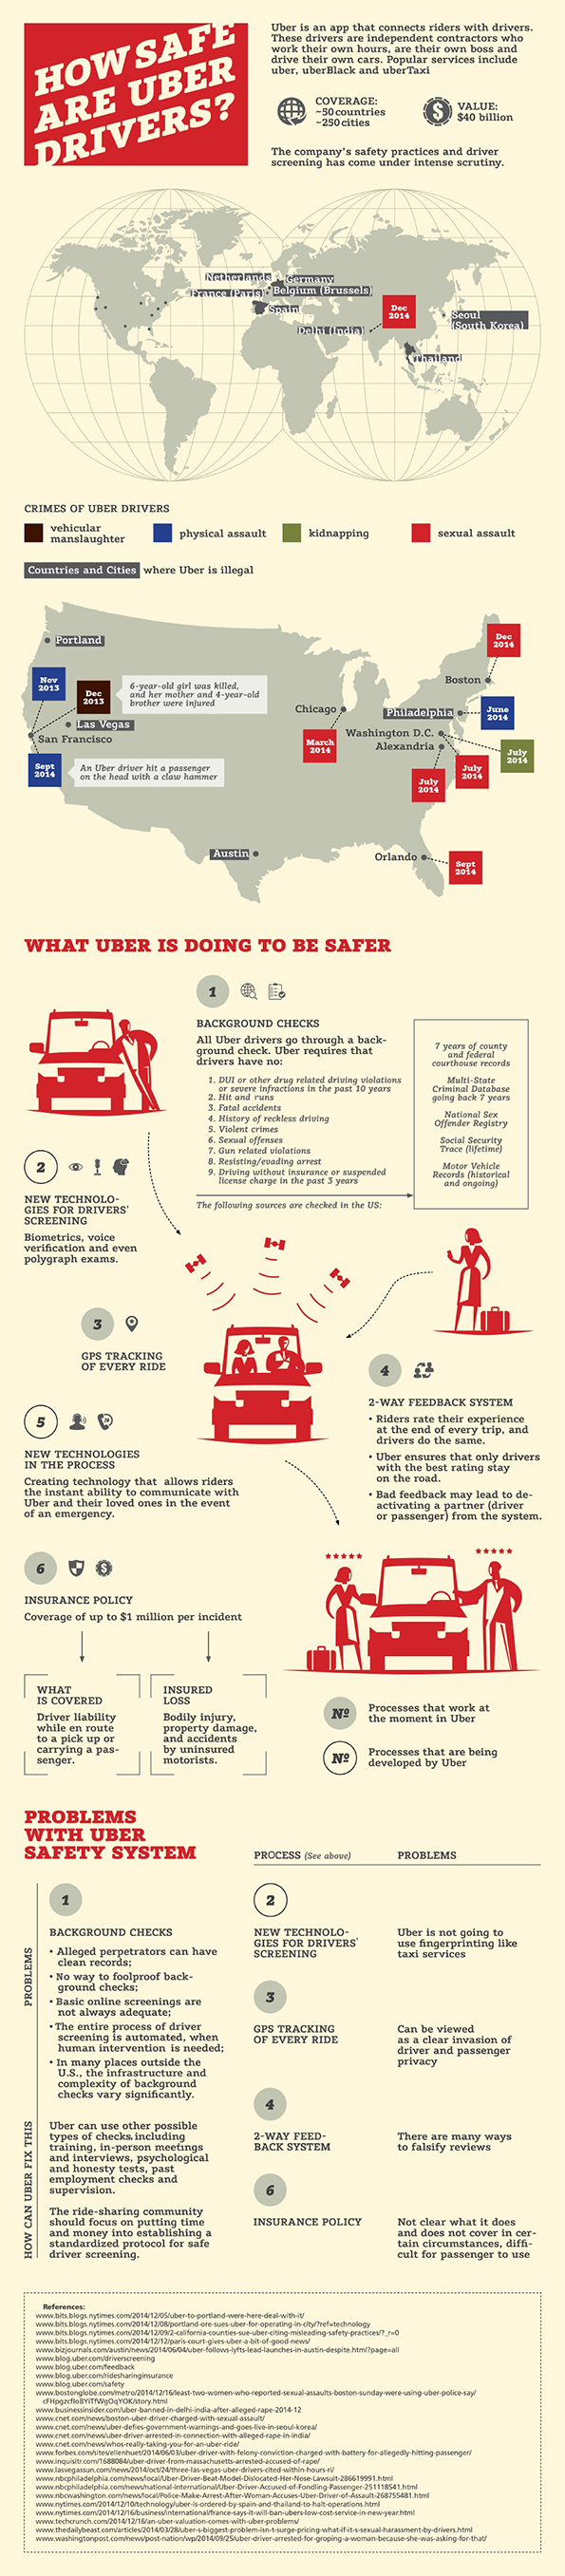 how safe are uber drivers